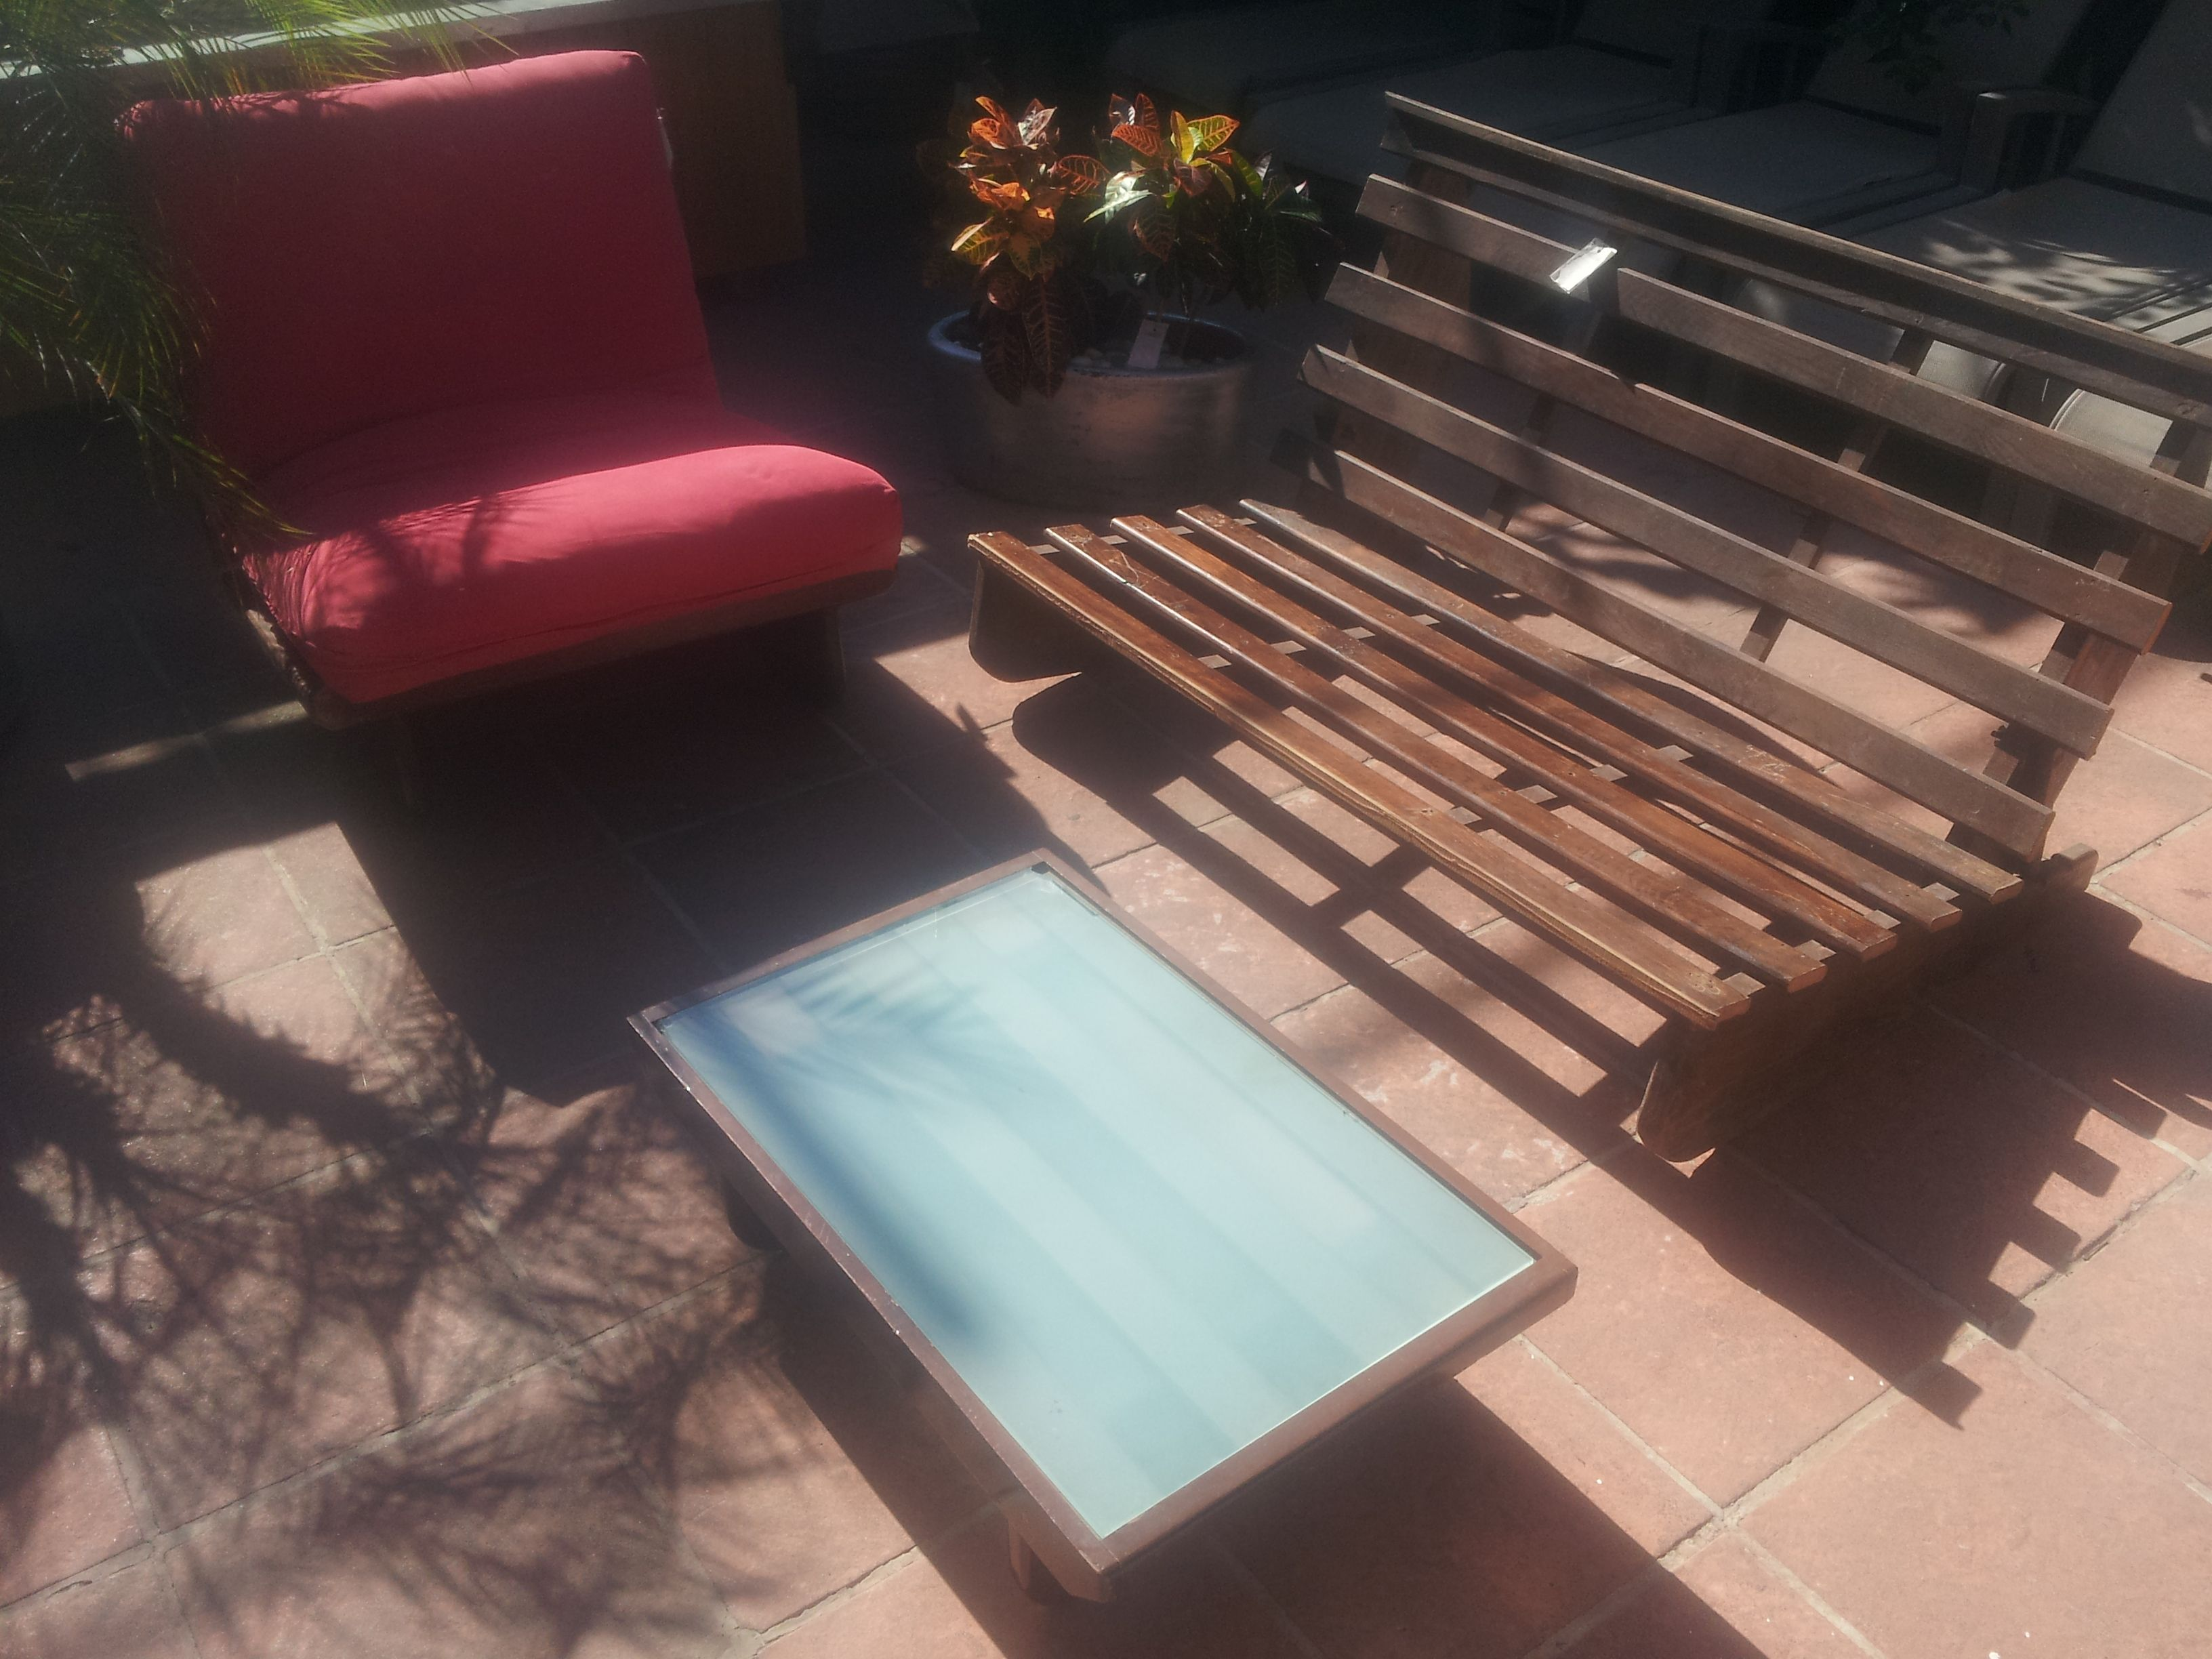 Futon Couch & Chair In Wood Slat Patio Furniture. Small Outdoor